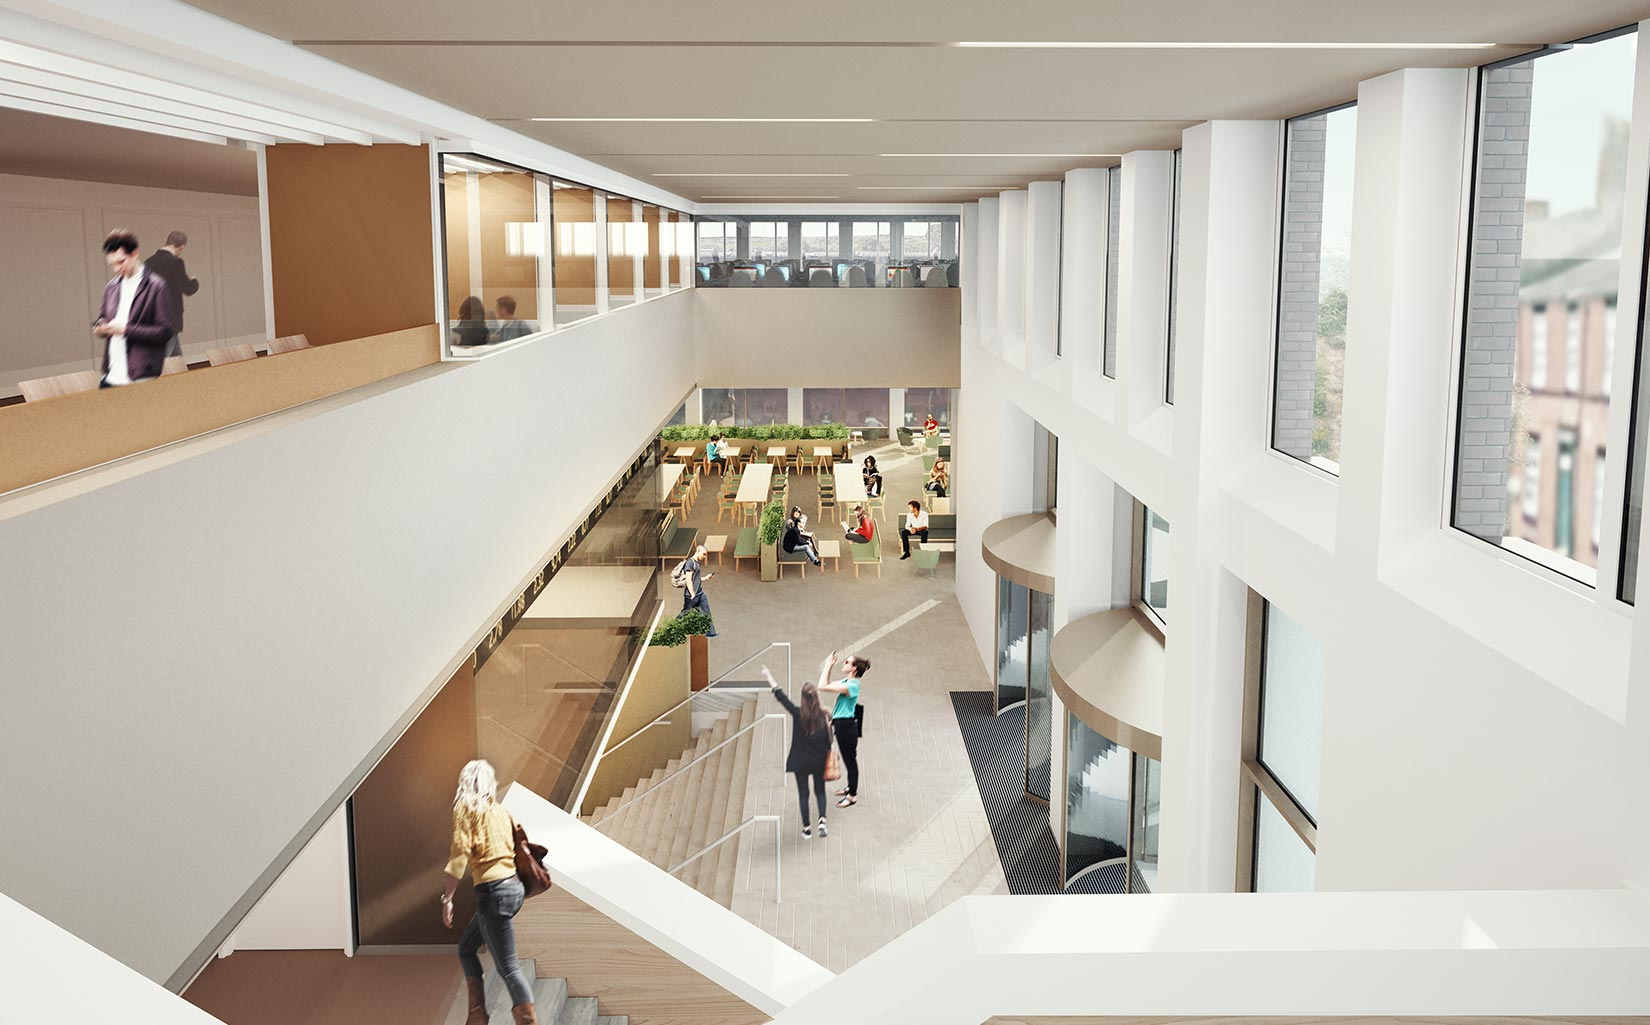 Business School, University of Leeds, 3D visual from the upper level